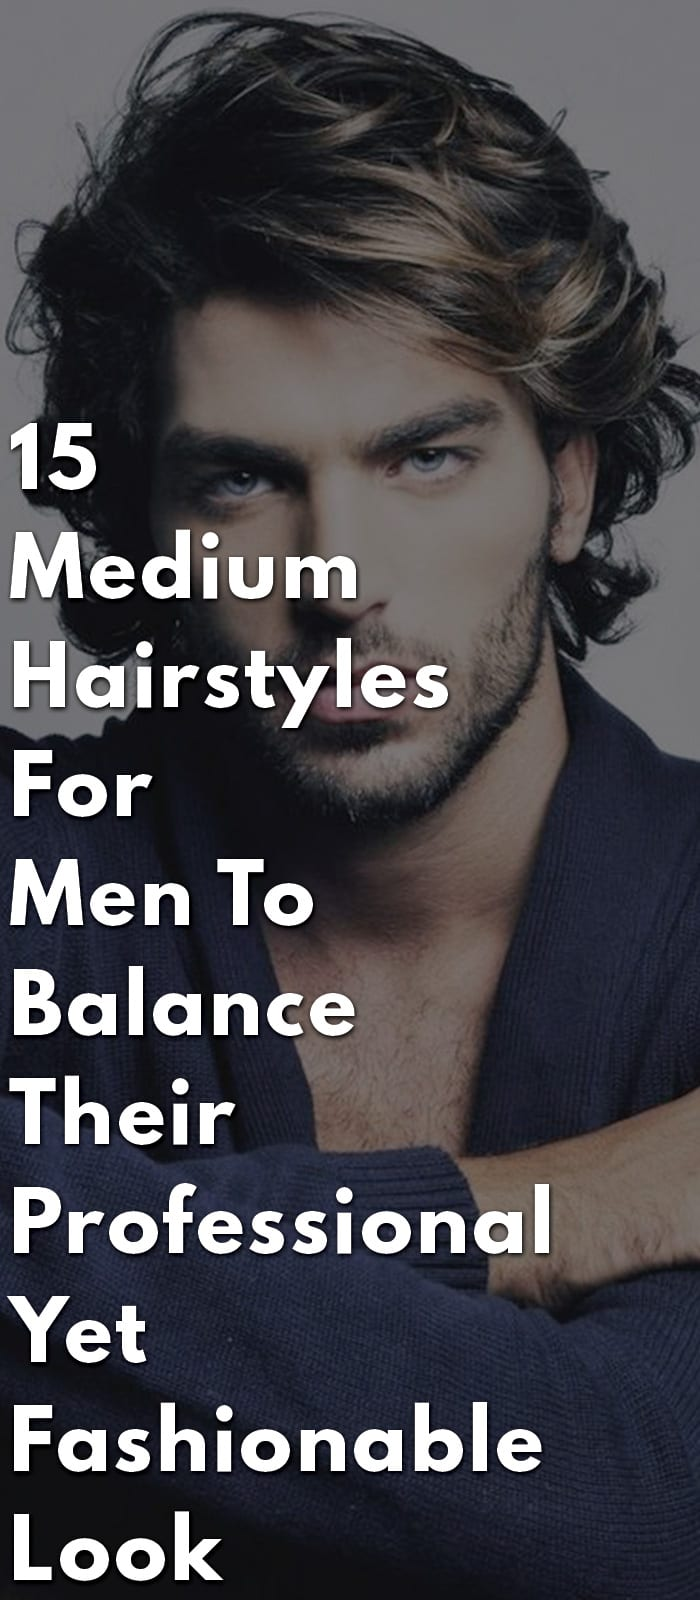 15-Medium-Hairstyles-For-Men-To-Balance-Their-Professional-Yet-Fashionable-Look